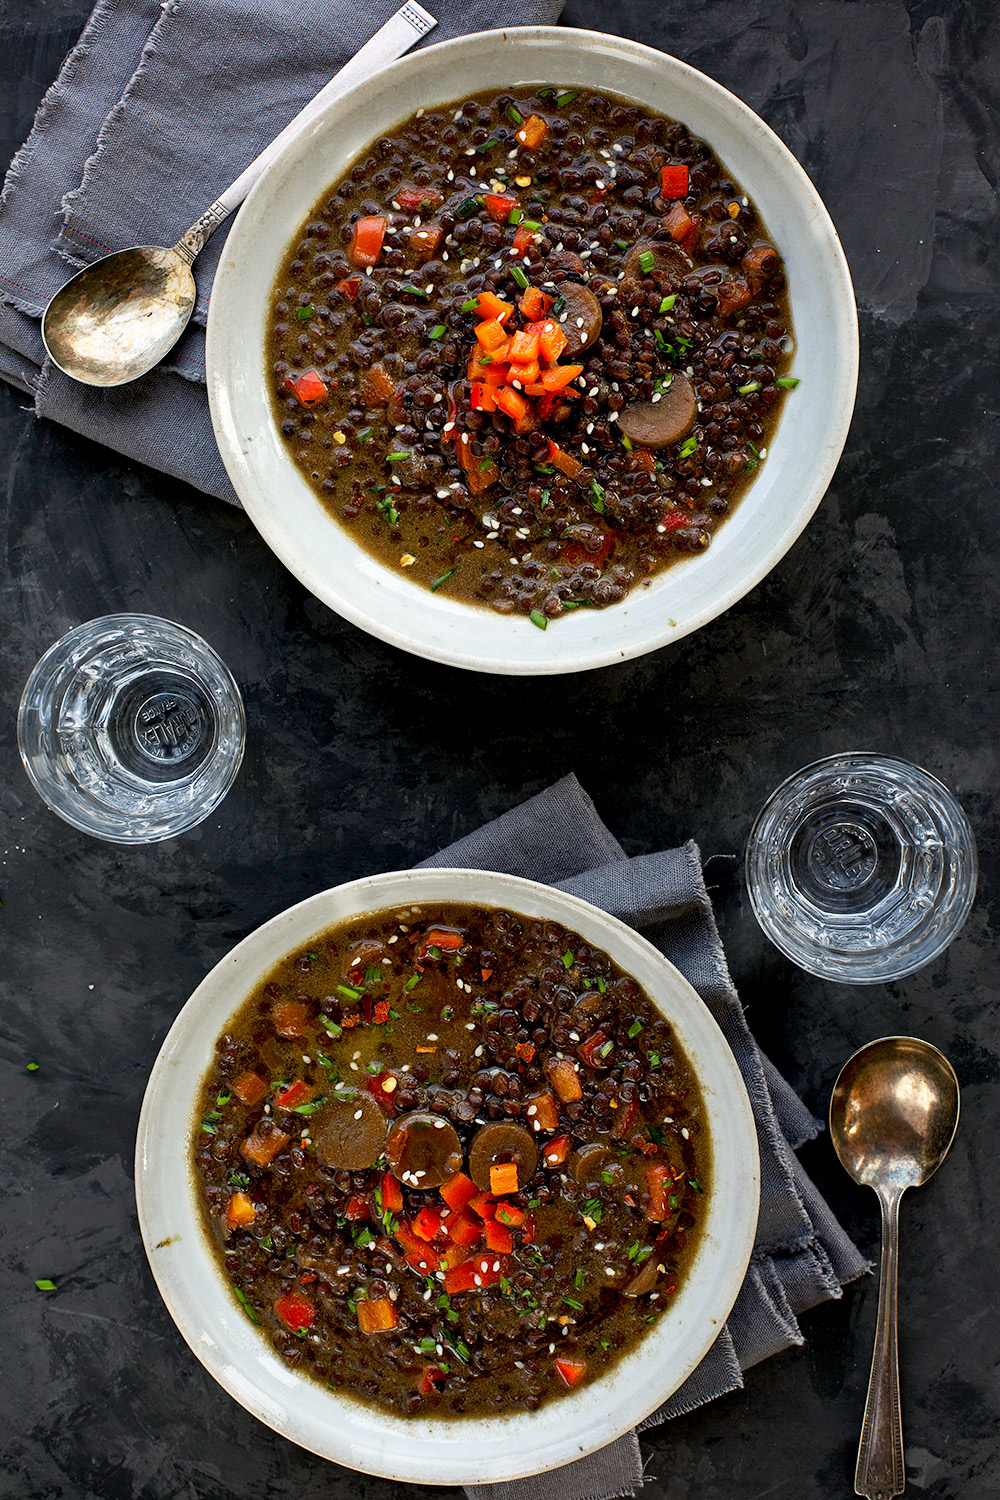 Black Lentil Sesame Coconut Soup - #vegan #glutenfree - CaliZona - Not only does it have heartwarming flavors, it's healthy and delicious!